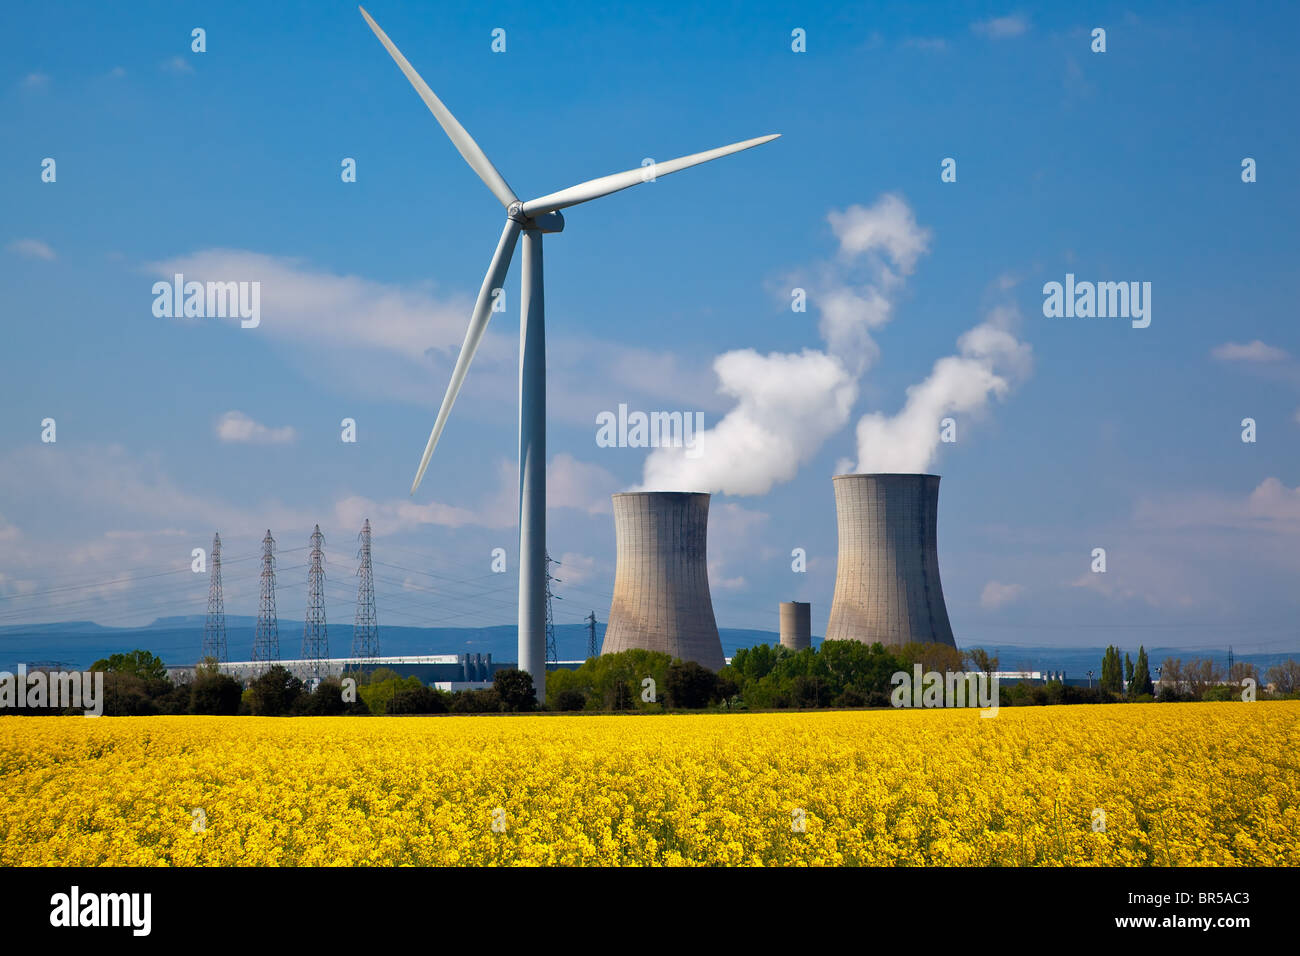 France, Drome and Vaucluse, wind turbines and Tricastin Nuclear Power Station - Stock Image